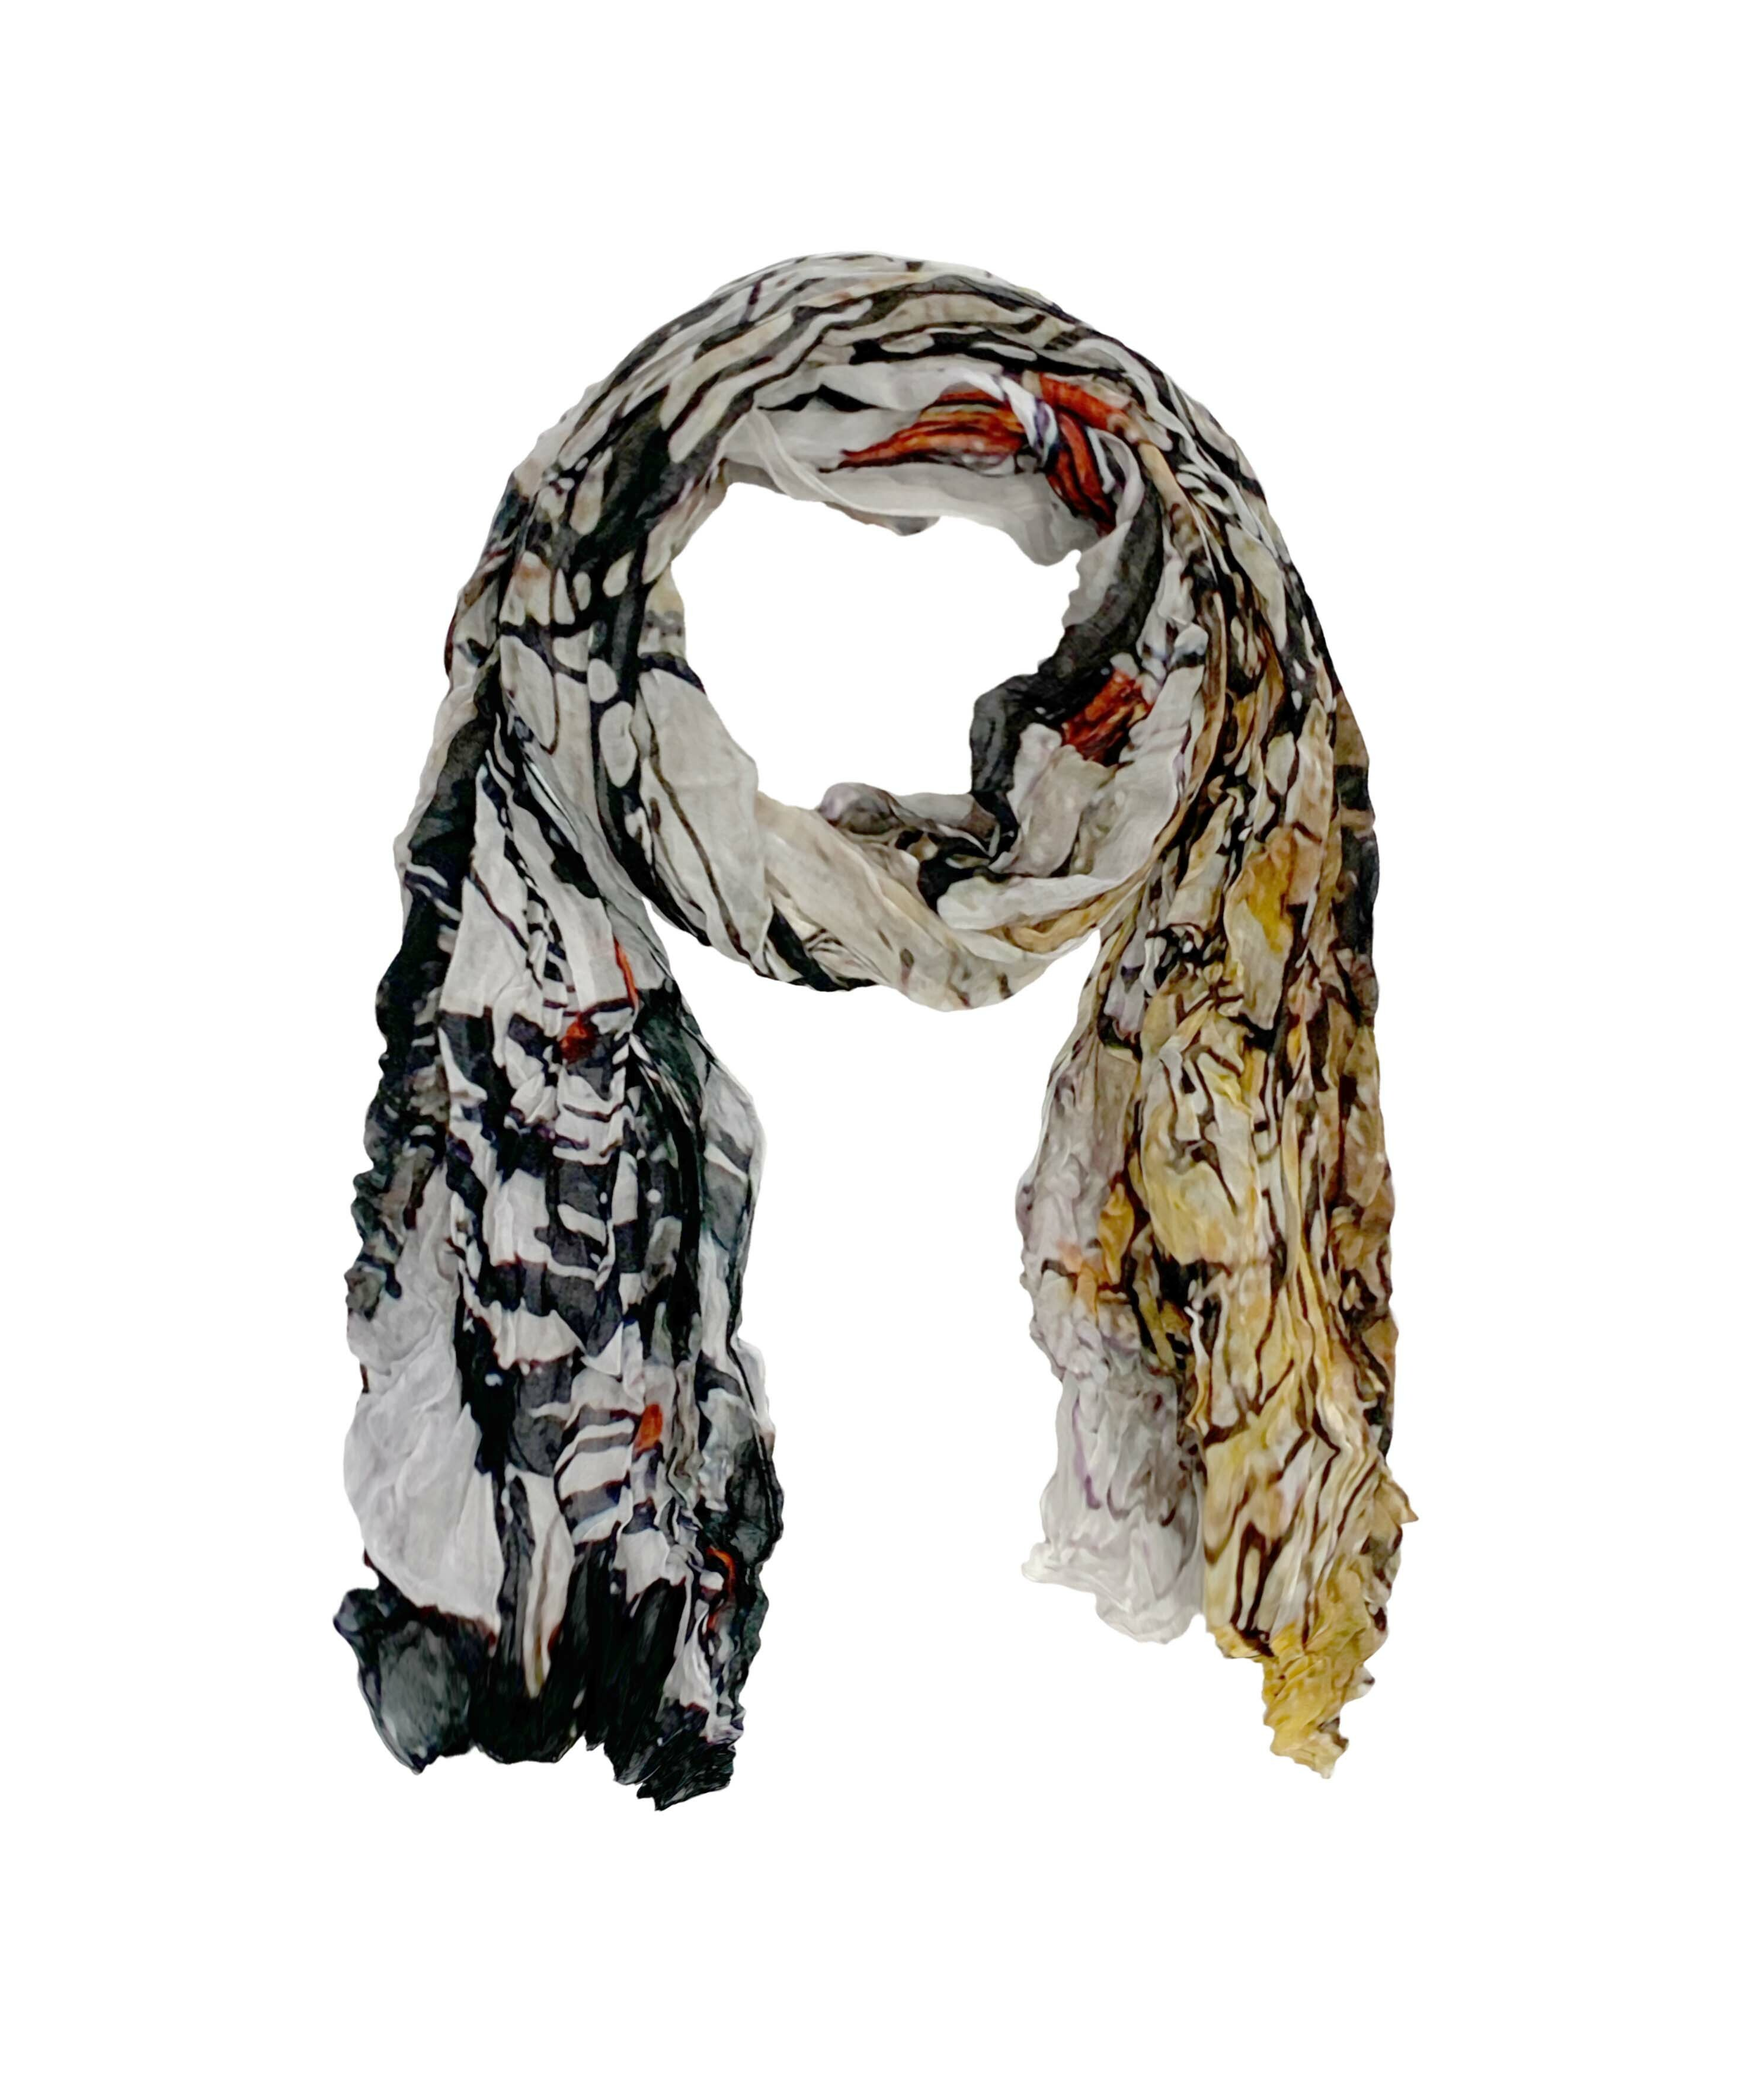 Simply Art Dolcezza: Parisian Life Abstract Art Scarf SOLD OUT Dolcezza_SimplyArt_59910